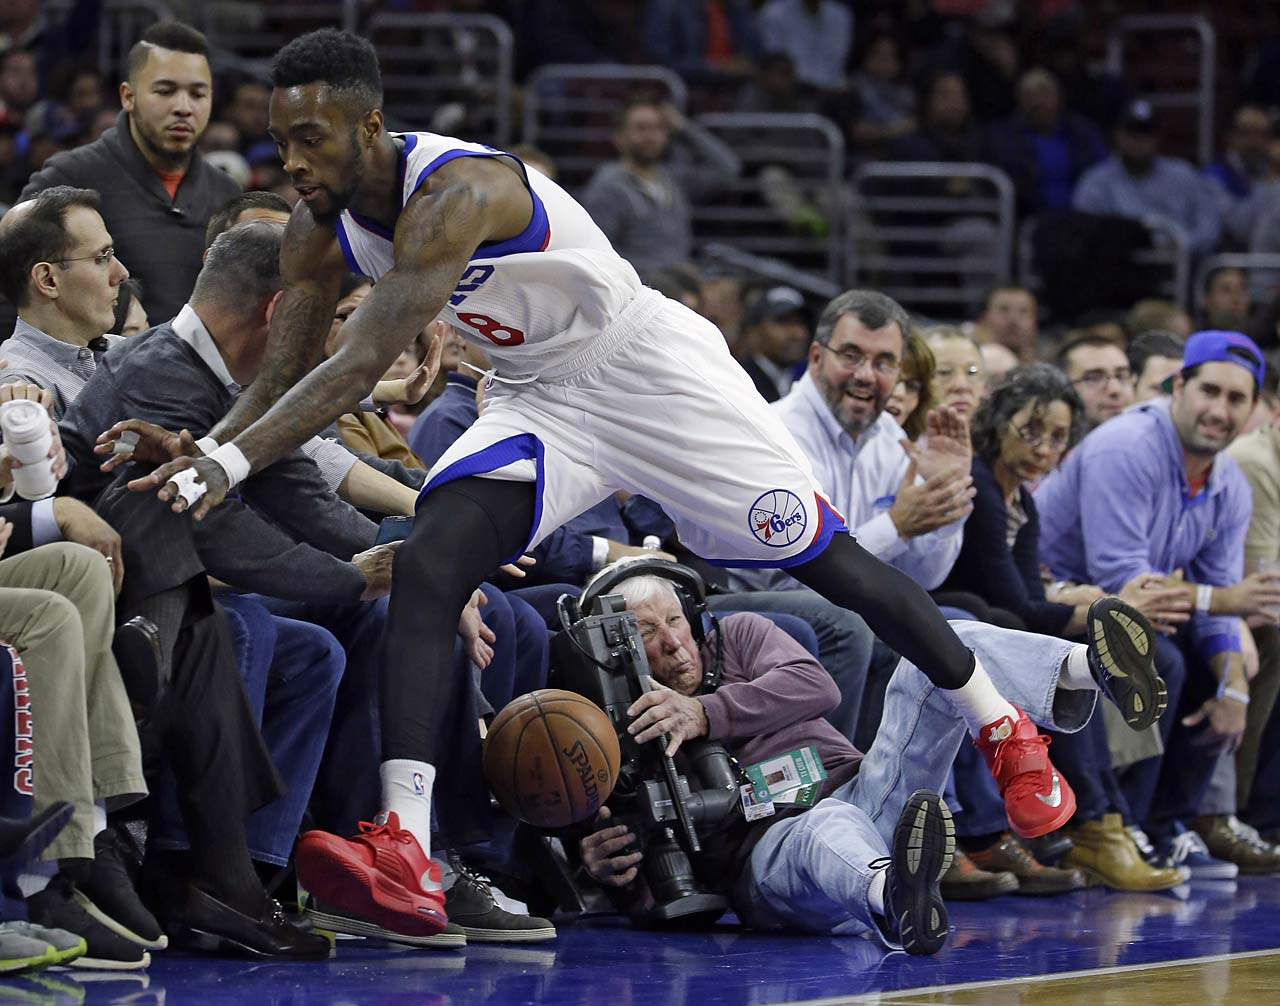 Philadelphia 76ers' Tony Wroten collides with a cameraman after chasing a loose ball into the seats during a 2014 game.